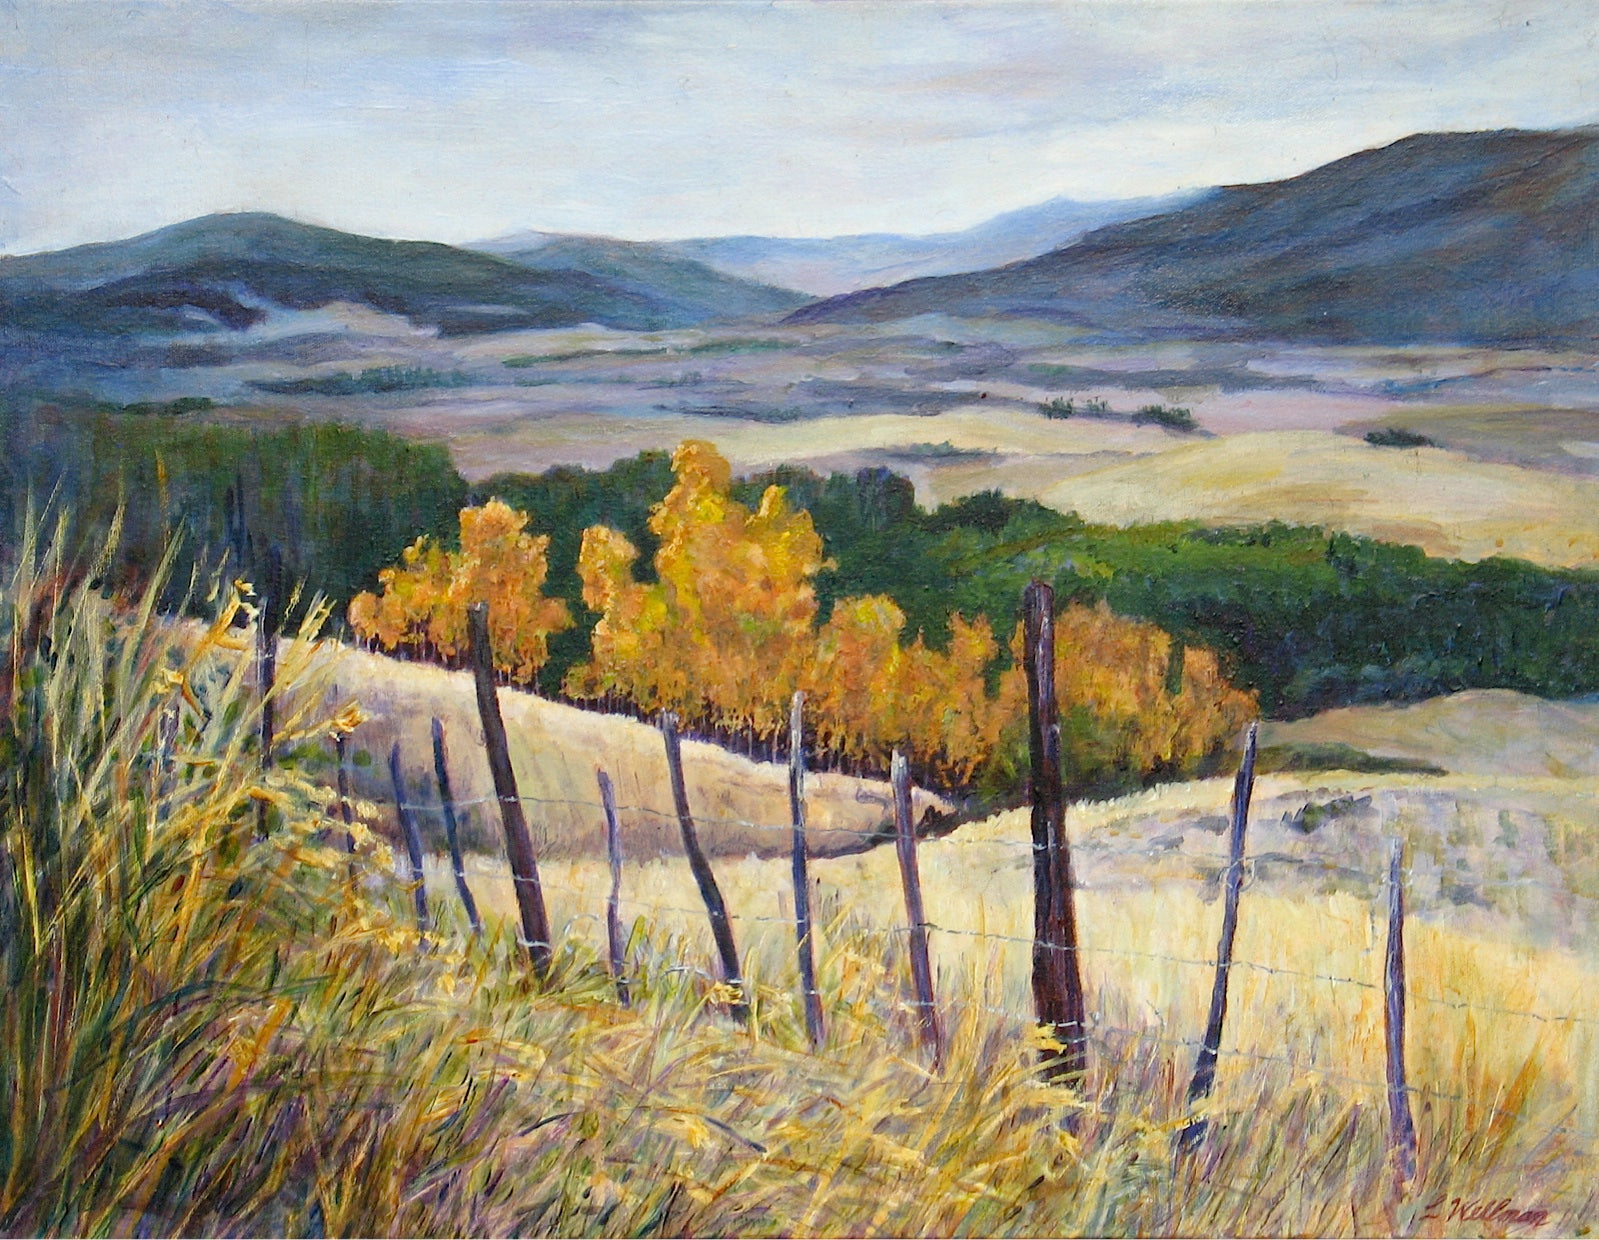 Autumn - Nicola Valley by Loraine Wellman